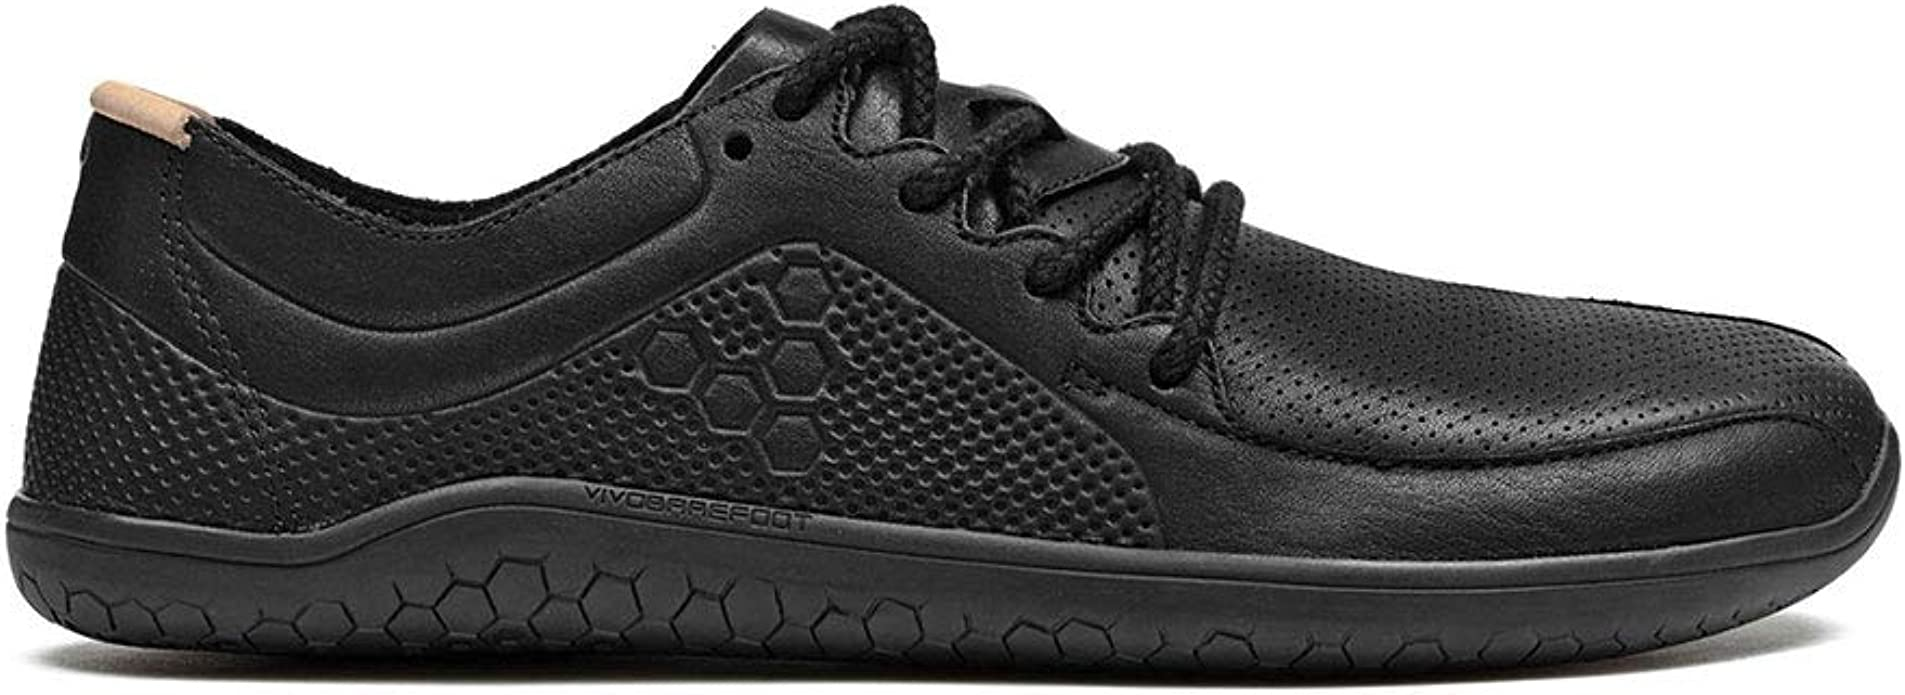 Vivobarefoot Womens Primus Lux Leather